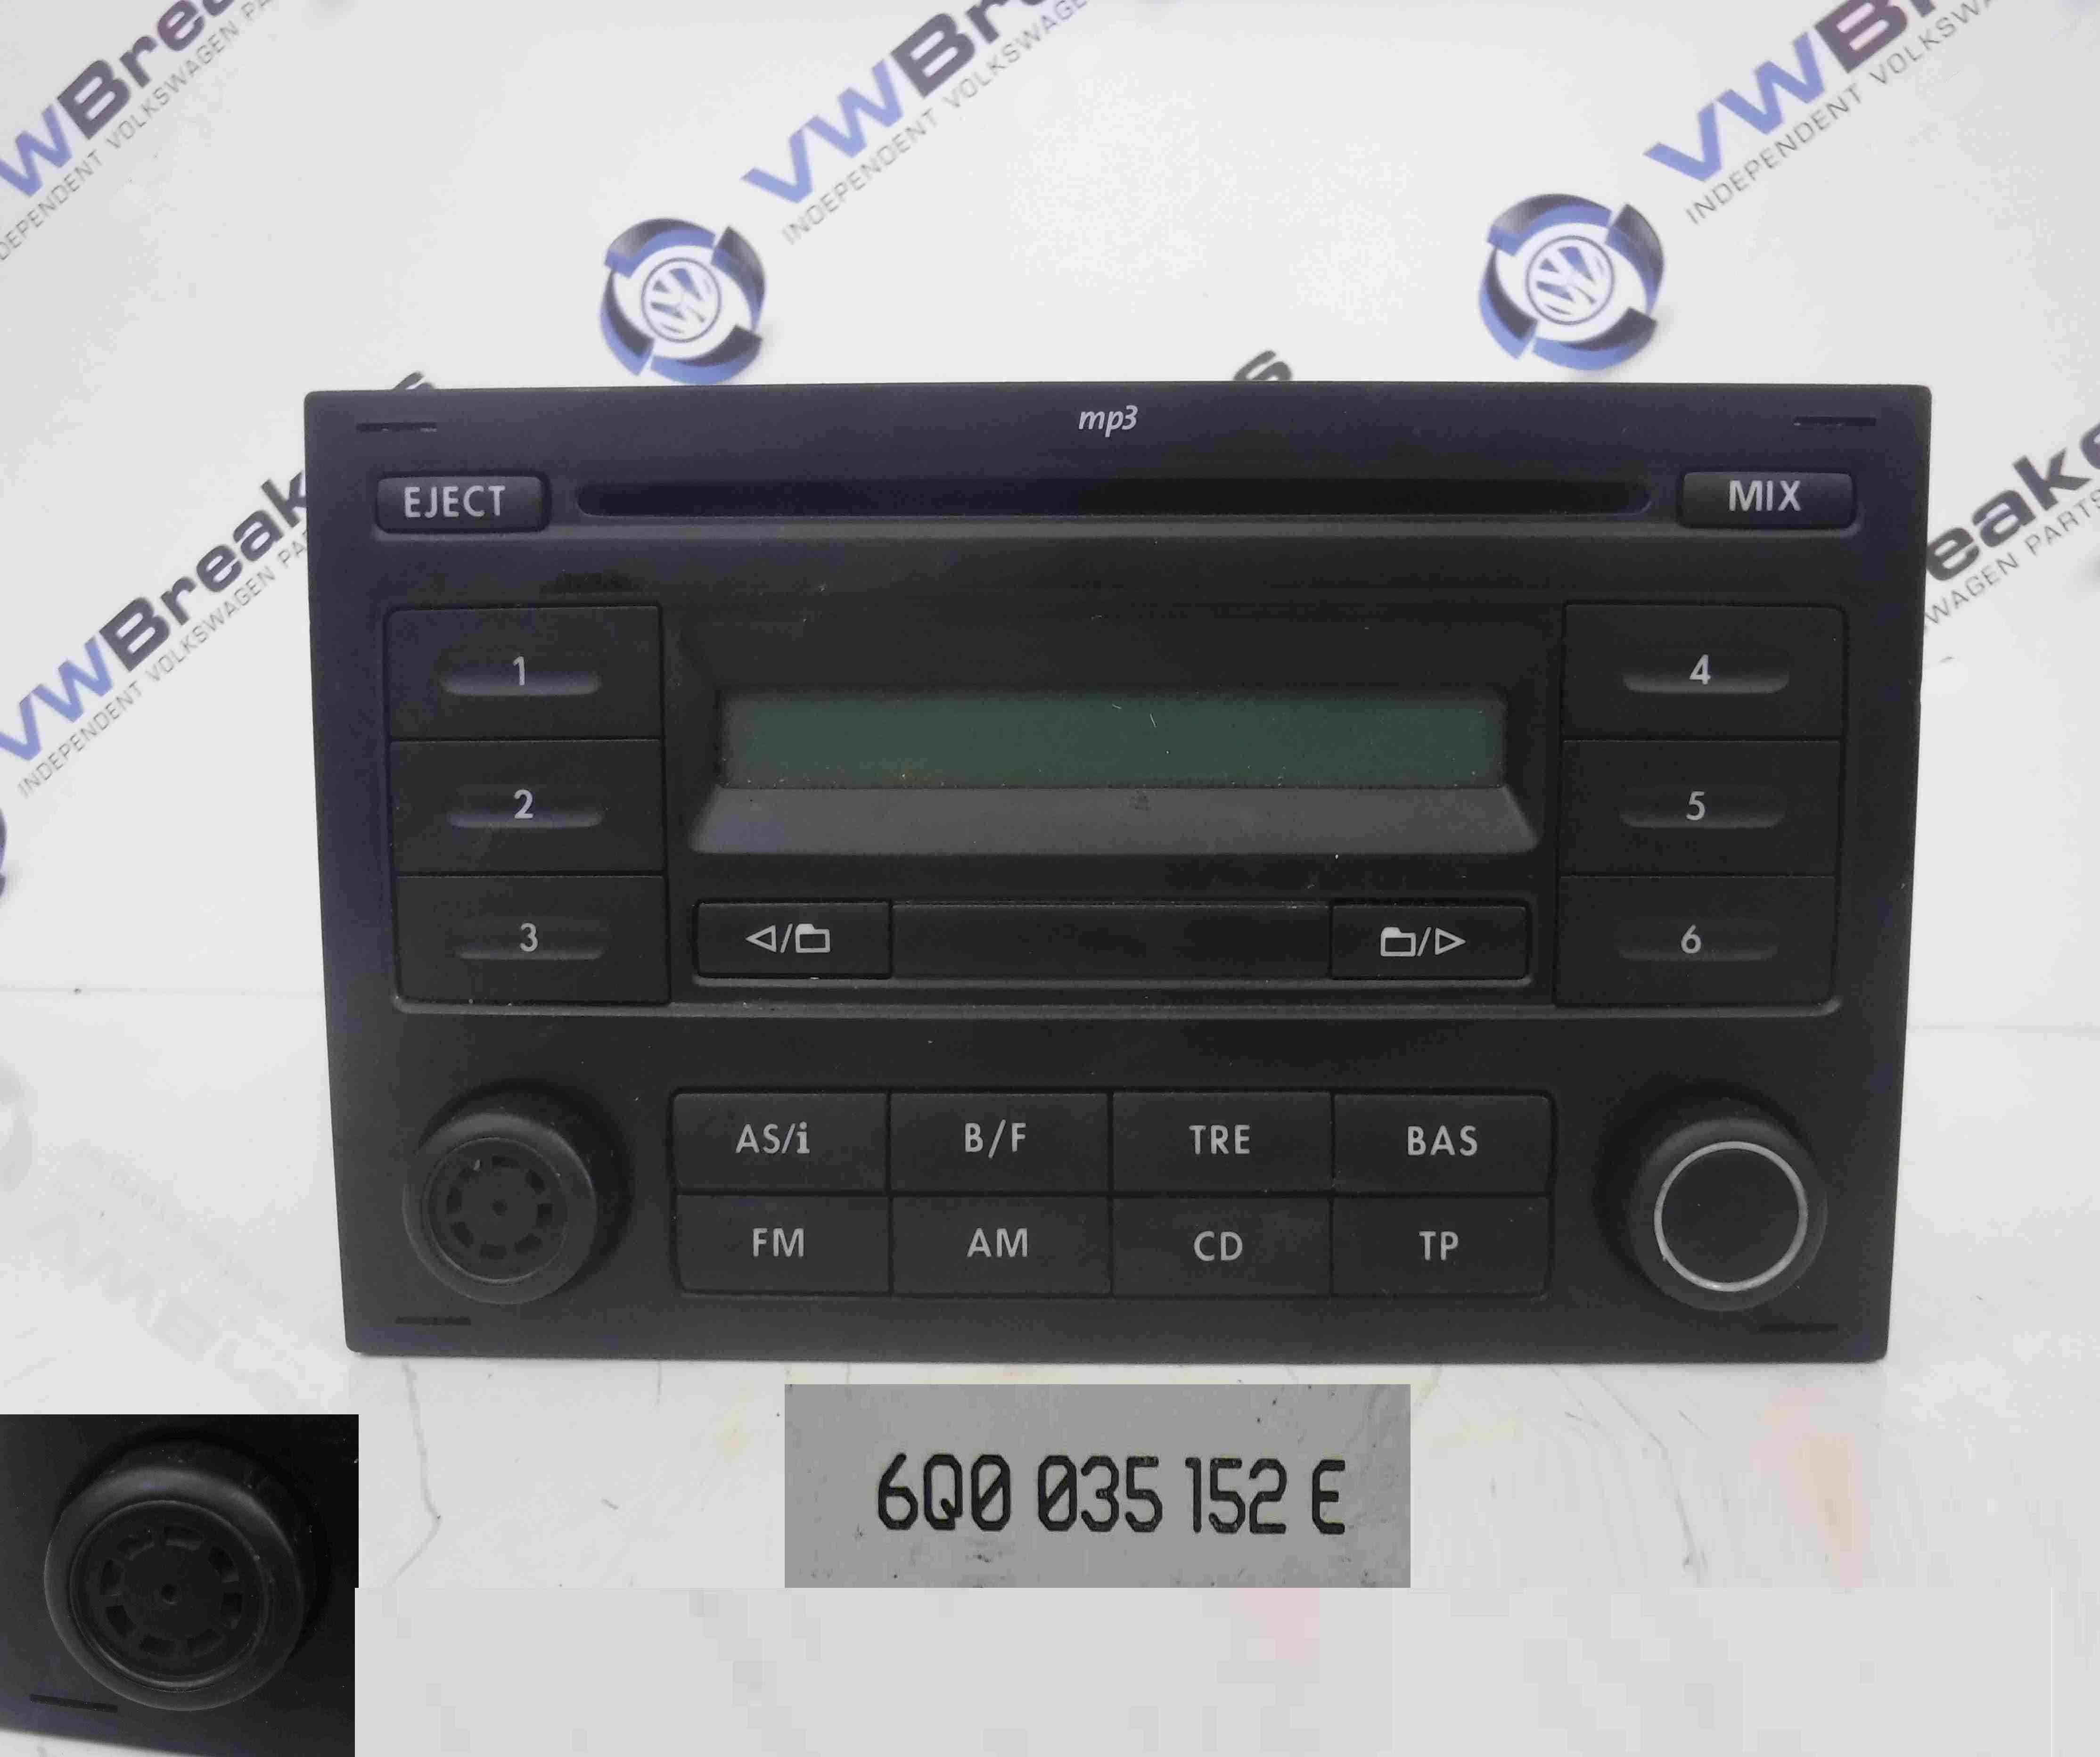 volkswagen polo 2006 2008 9n3 radio mp3 radio cd player. Black Bedroom Furniture Sets. Home Design Ideas